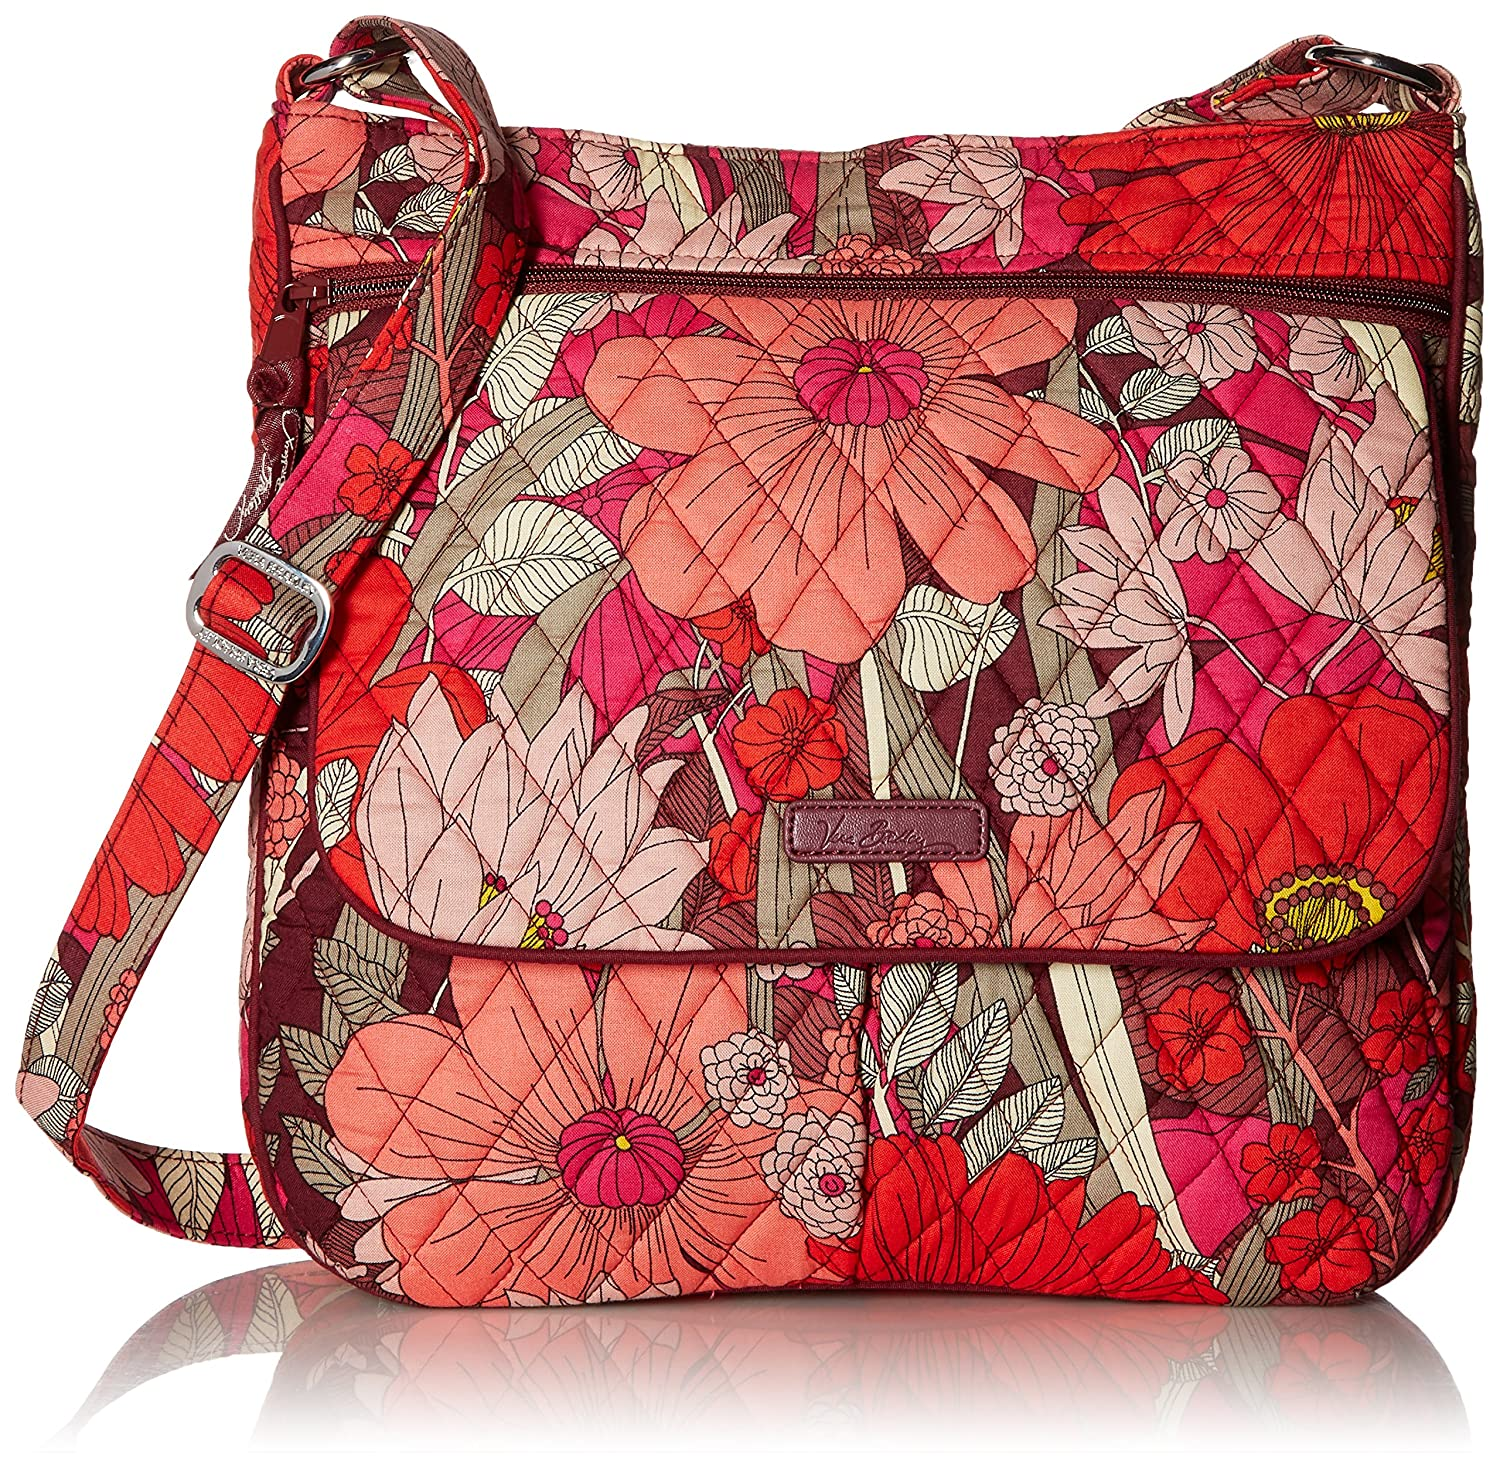 caeedf5a2190 Vera Bradley Women s Double Zip Mailbag Bohemian Blooms Cross Body   Handbags  Amazon.com